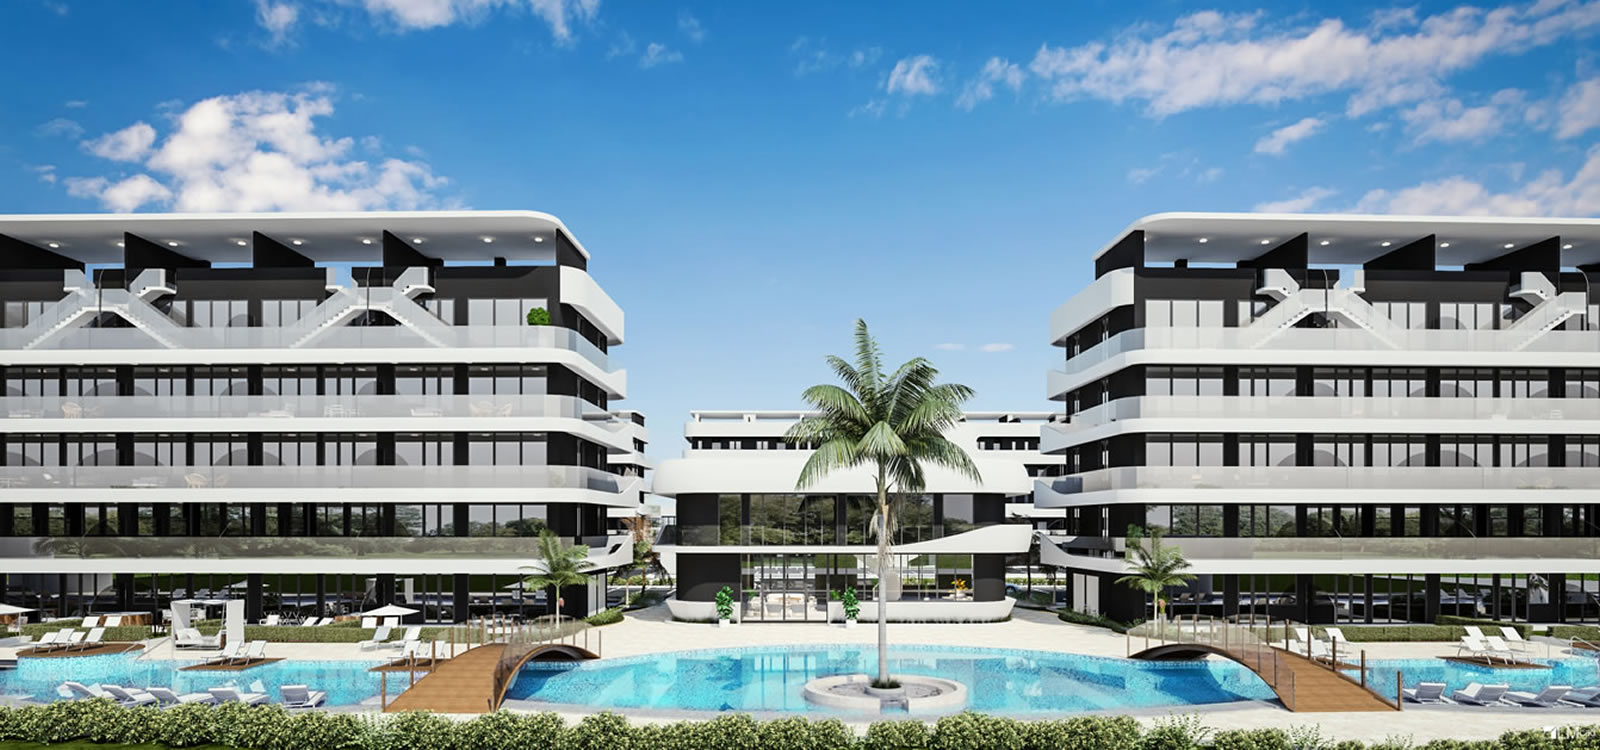 1 Bedroom Condos for Sale, Cana Bay, Punta Cana, Dominican ...